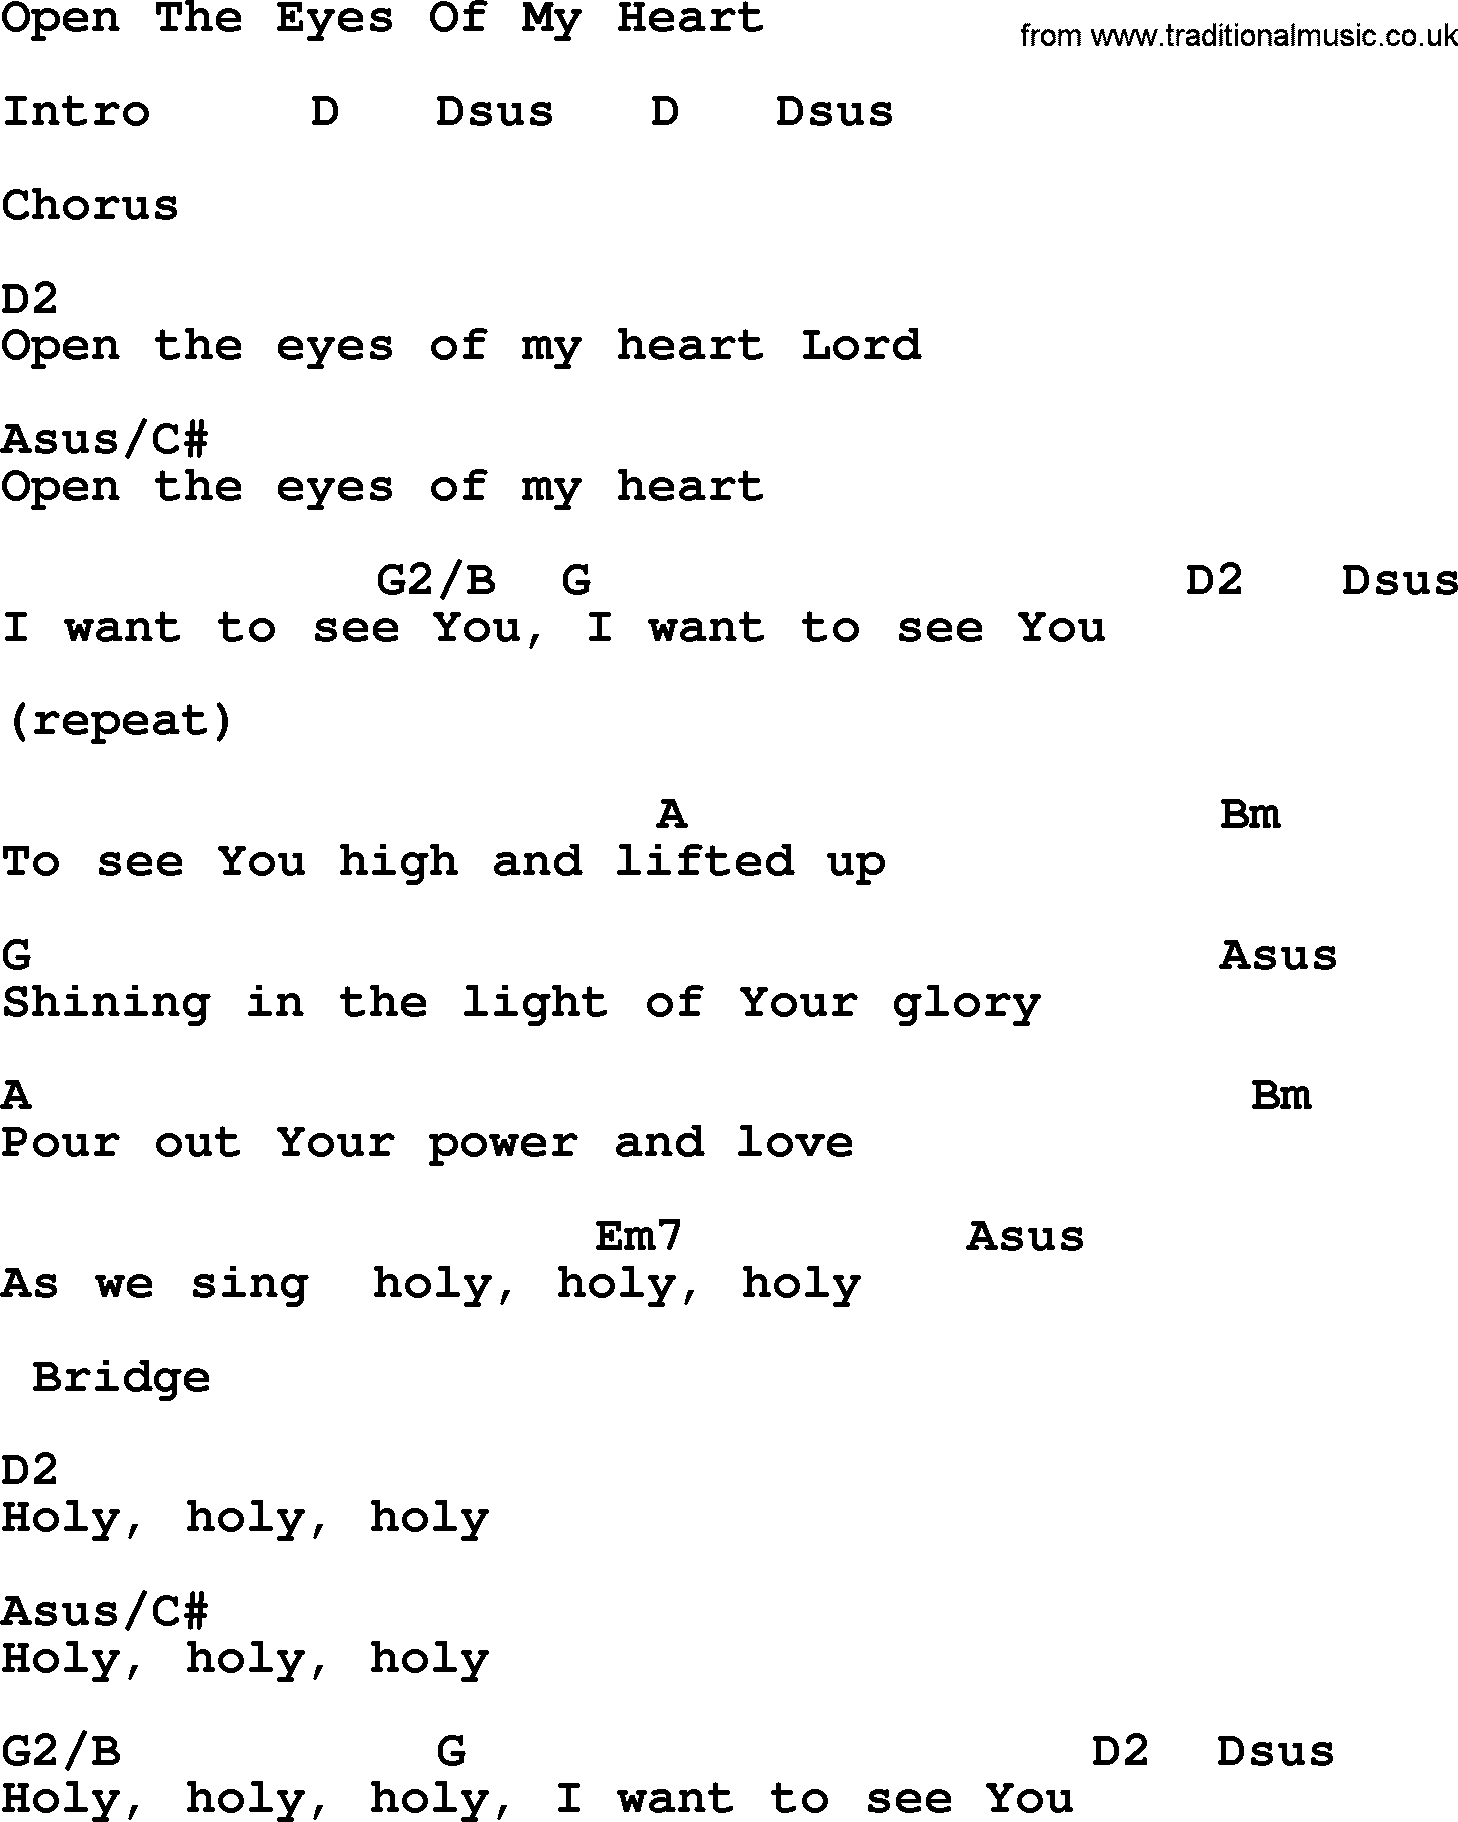 Open The Eyes Of My Heart Chords Ascension Hymn Open The Eyes Of My Heart Lyrics Chords And Pdf